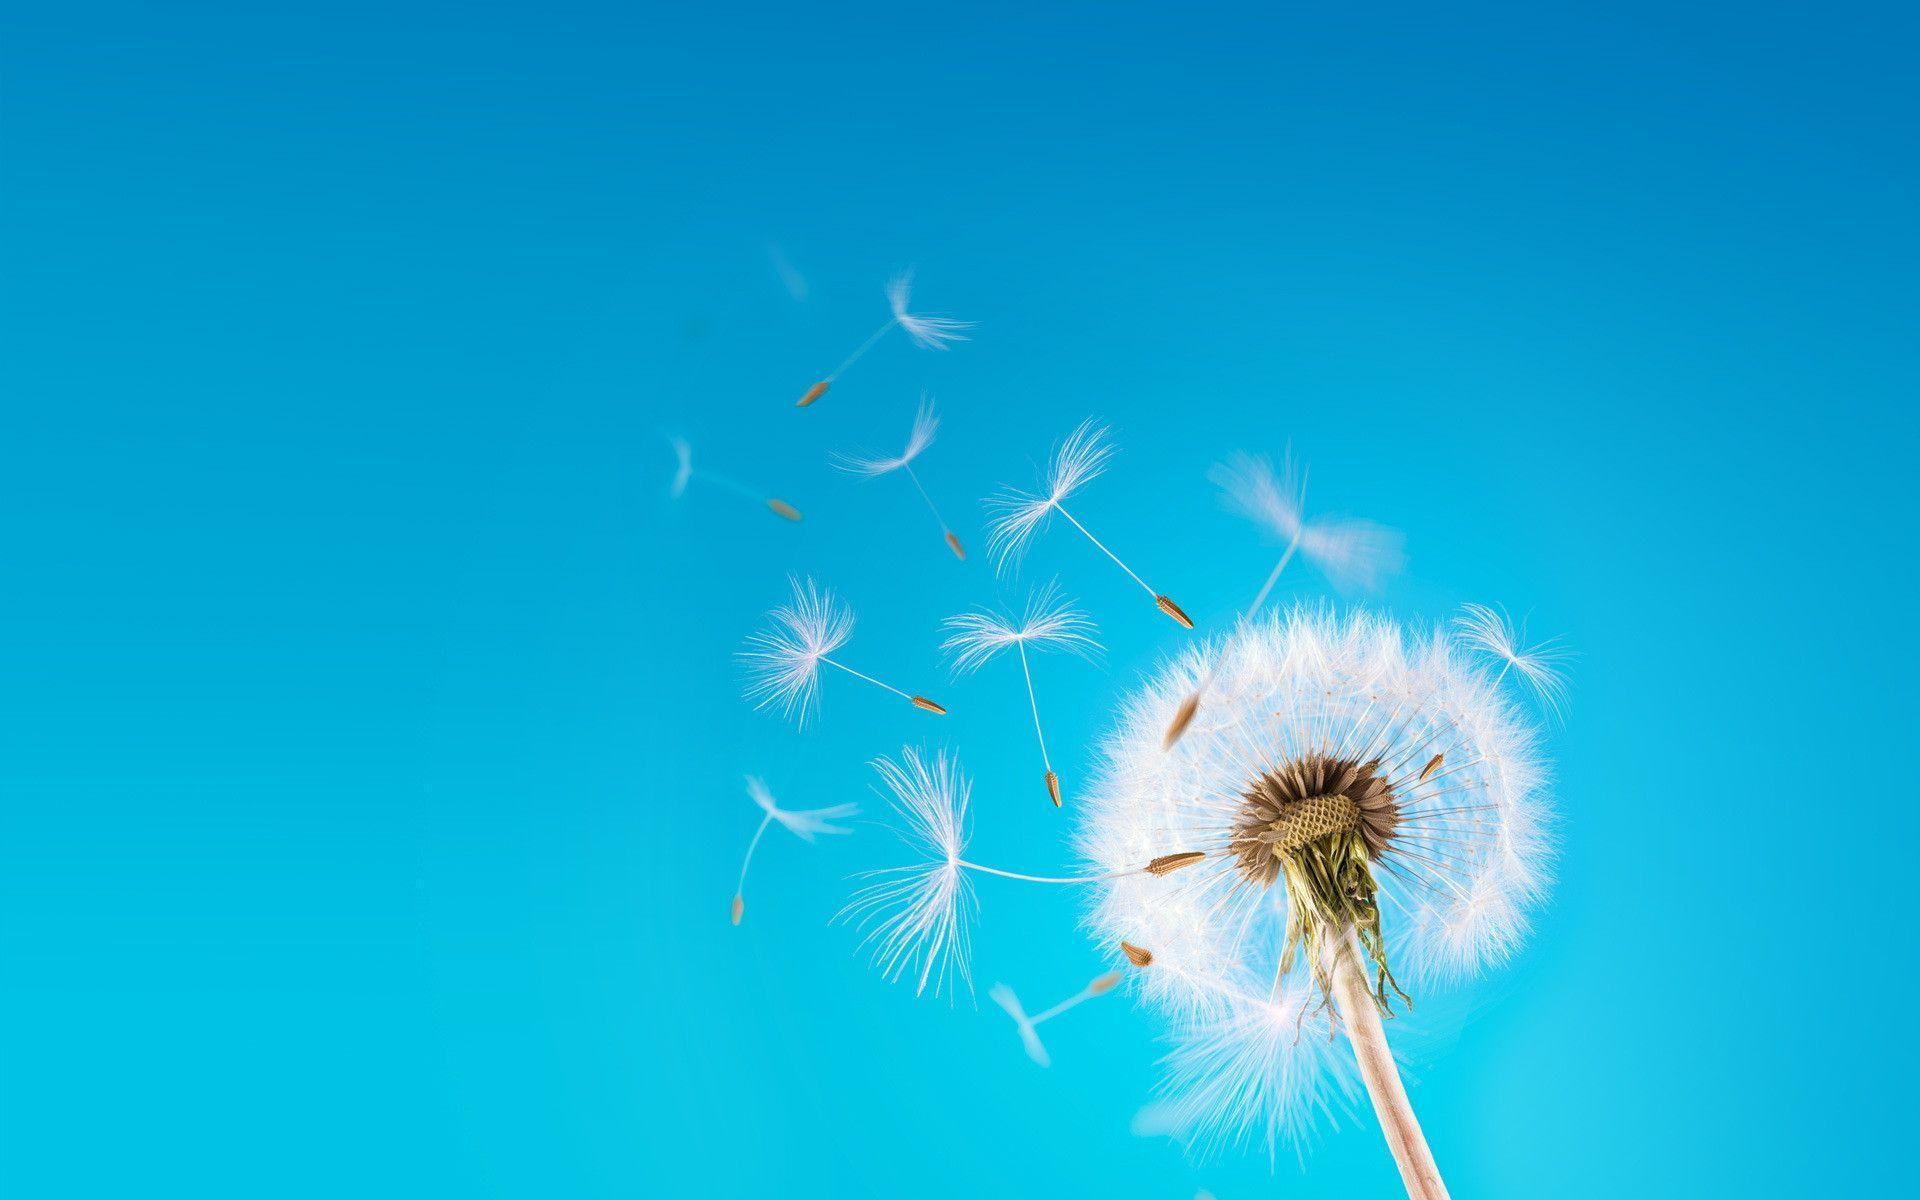 Dandelions on pastel curves wallpapers